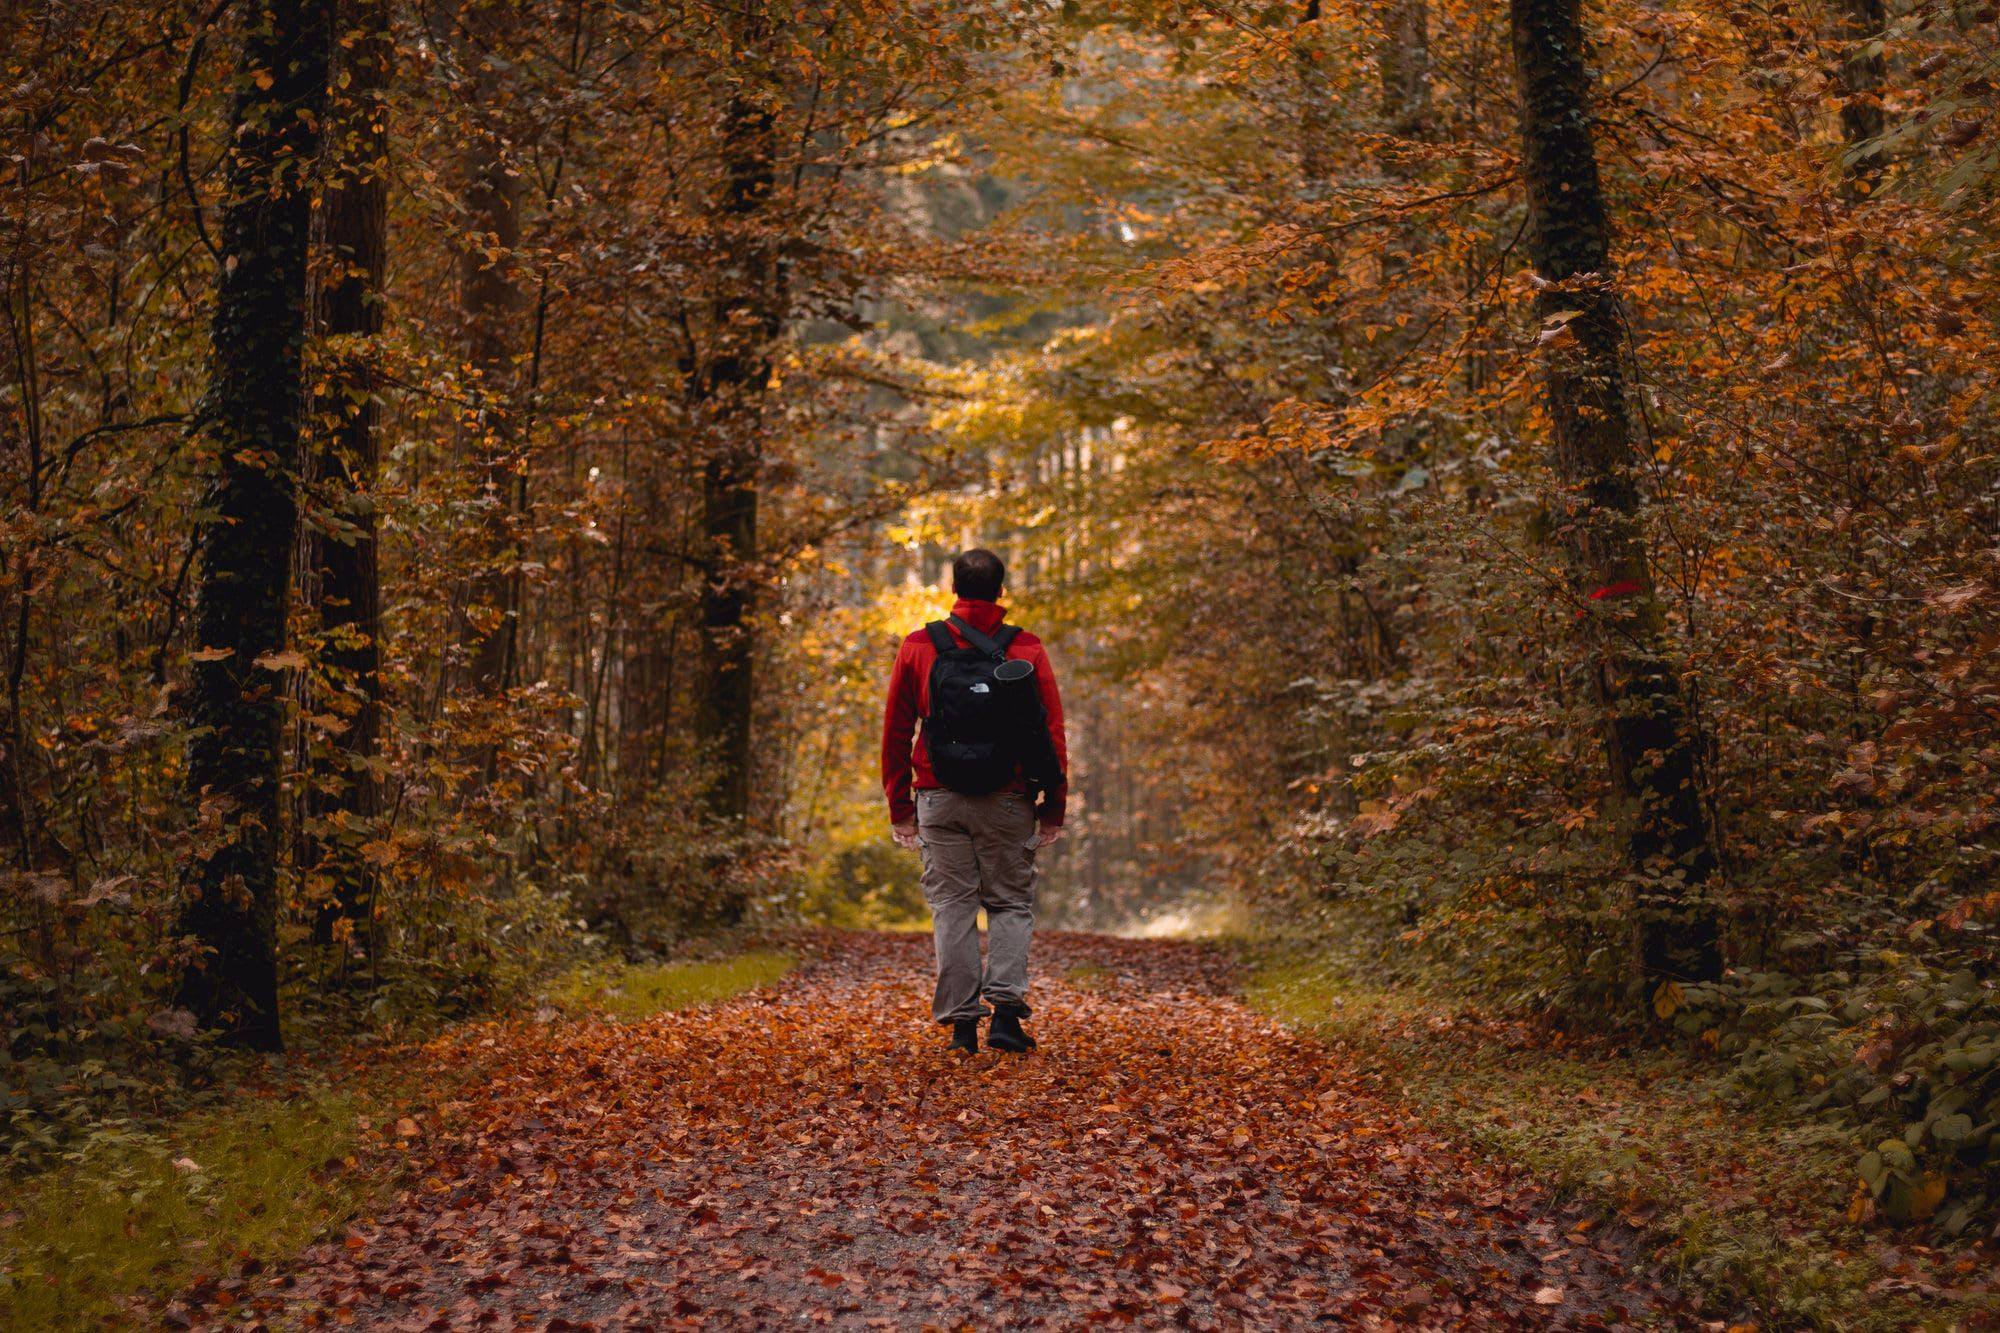 Surprise, Walking Is A Great Cardio Activity Too